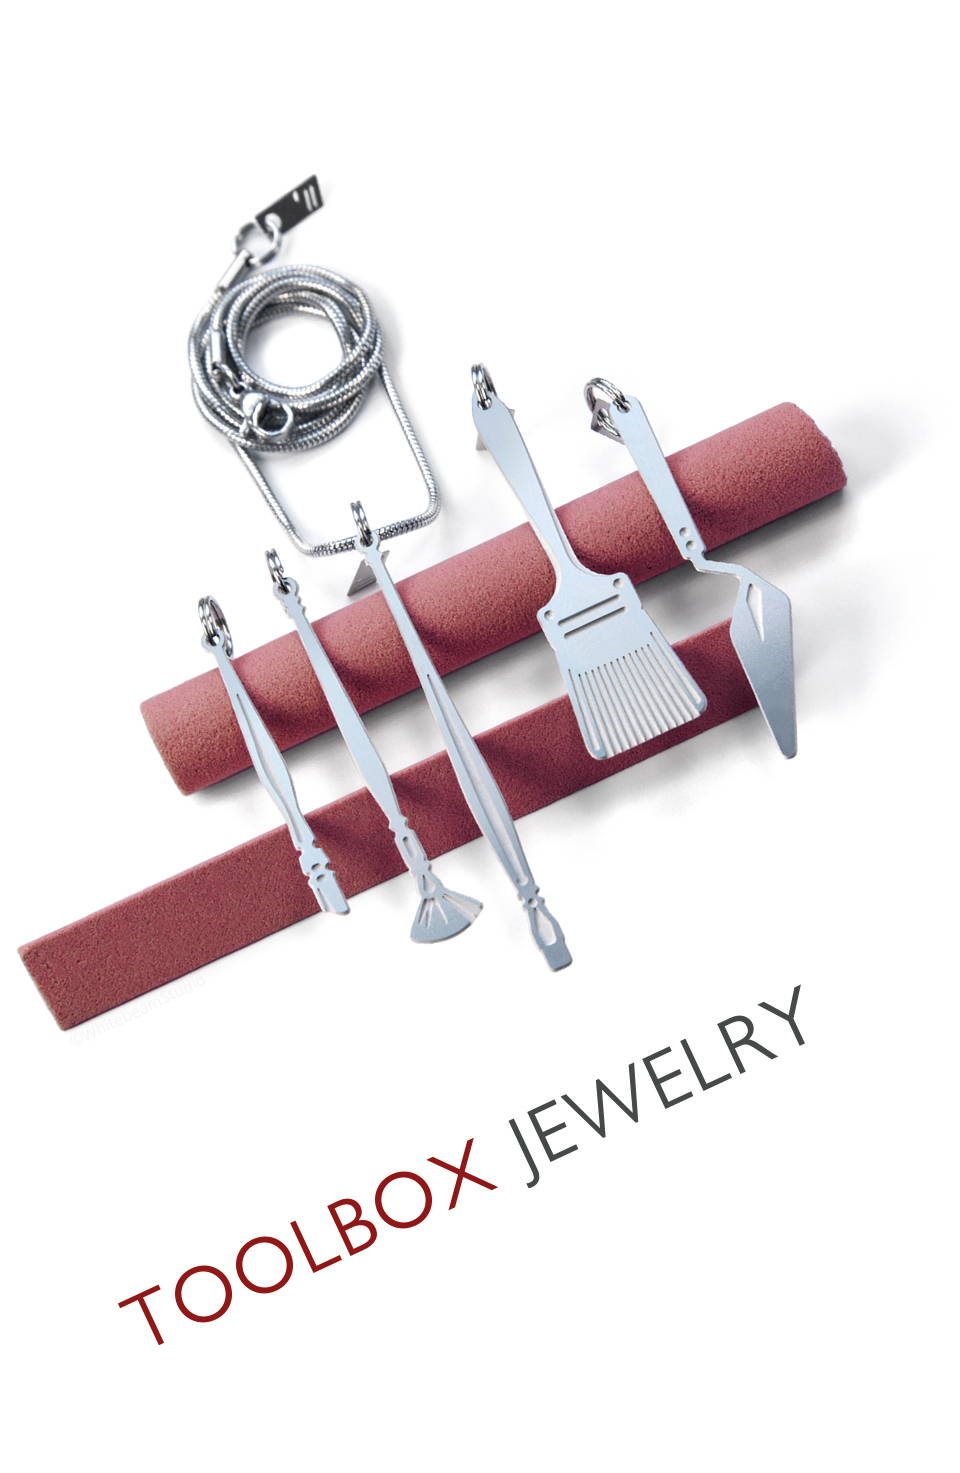 Whitebeam Toolbox jewelry